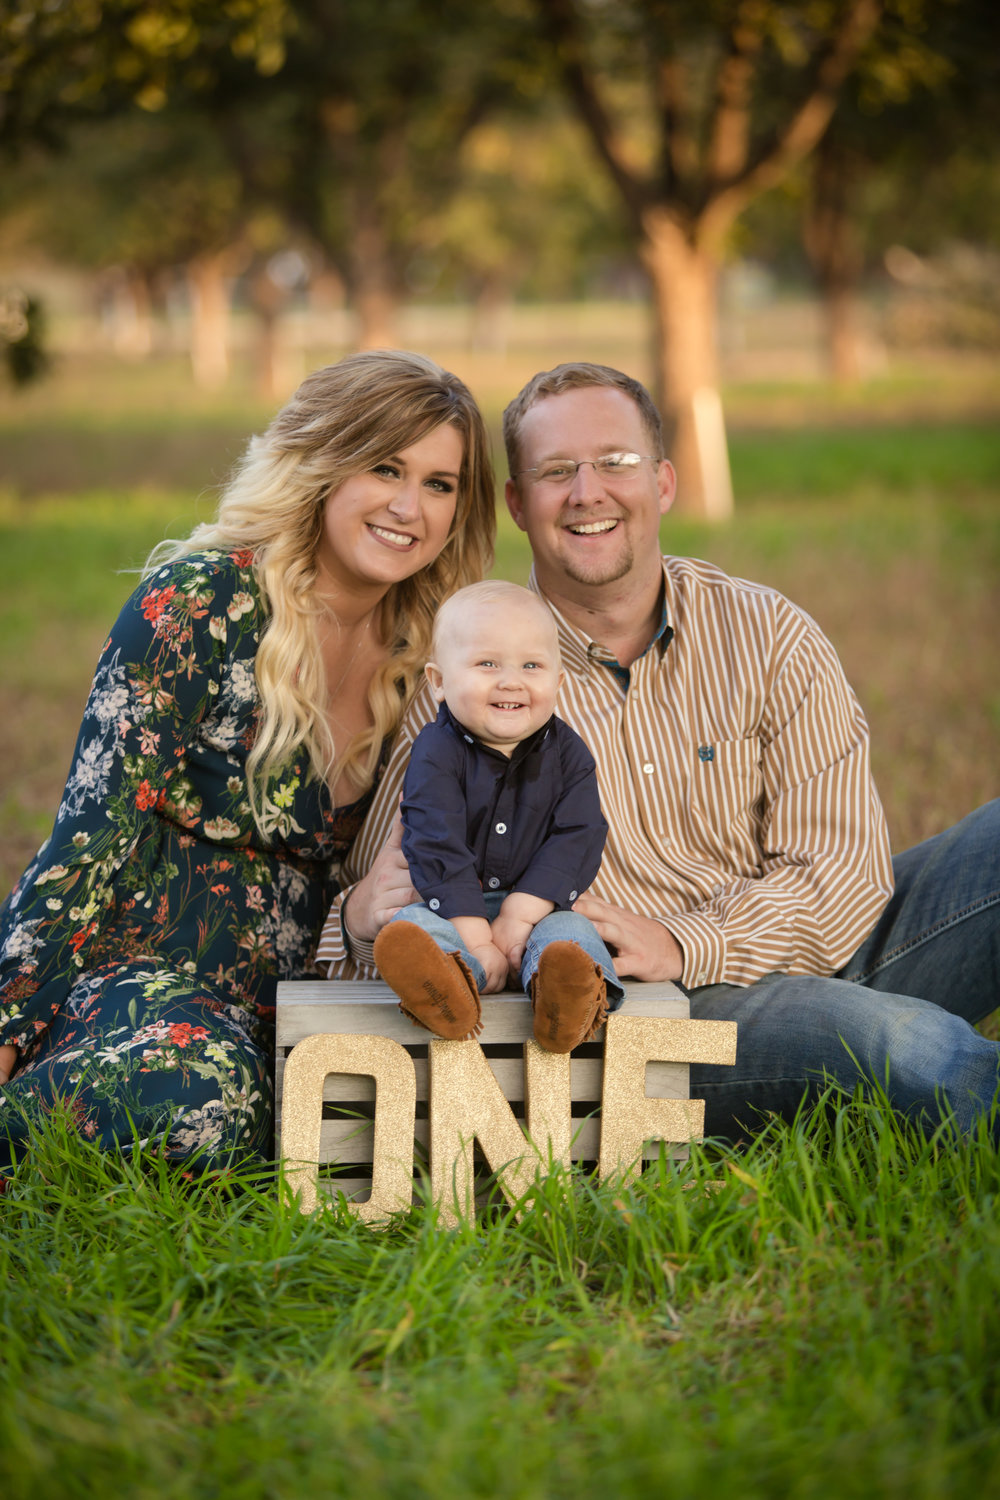 Marble_Falls_Photographer_Horseshoe_Bay_Stokes_Family11.jpg